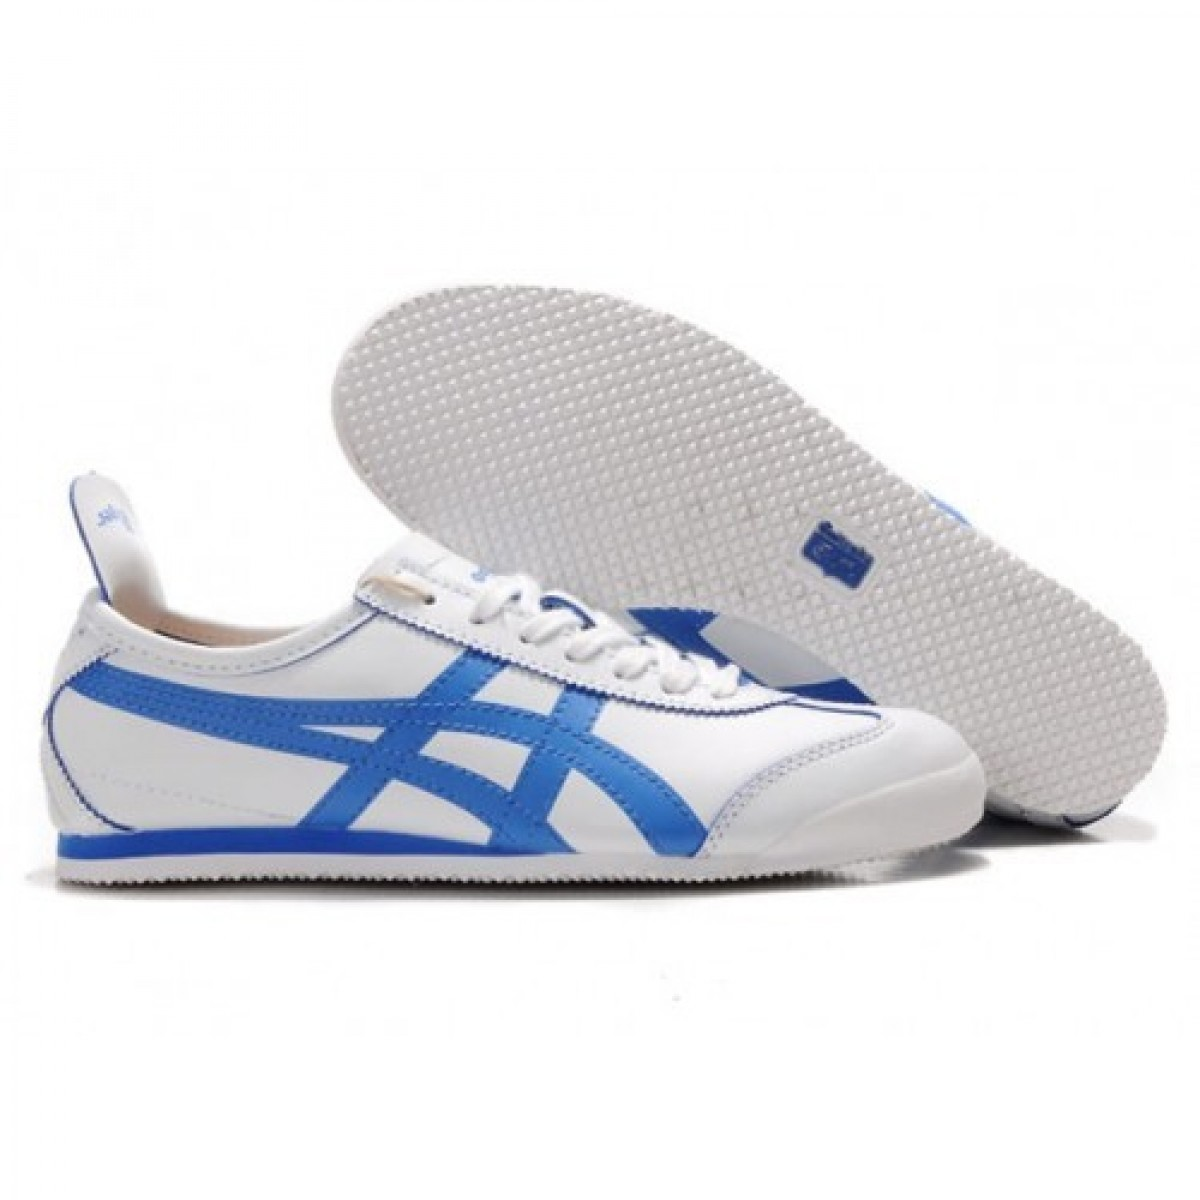 GD9289 Soldes Asics Onitsuka Tiger Mexico 66 Lauta Chaussures Borland Blanc 31952154 Pas Cher